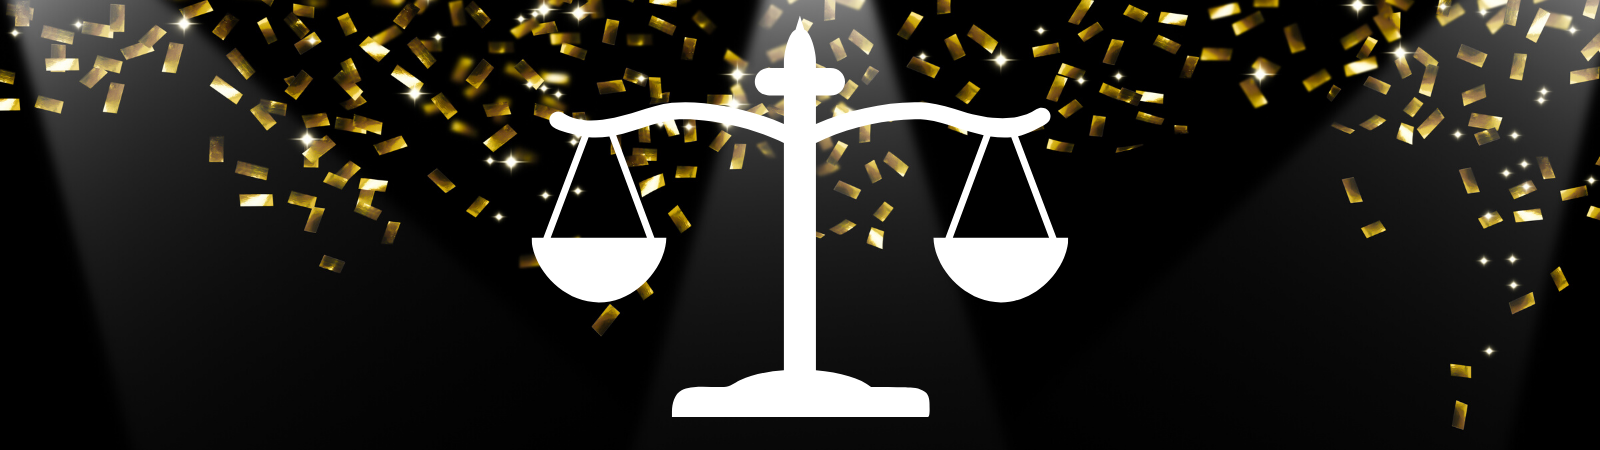 Legal Award banner image